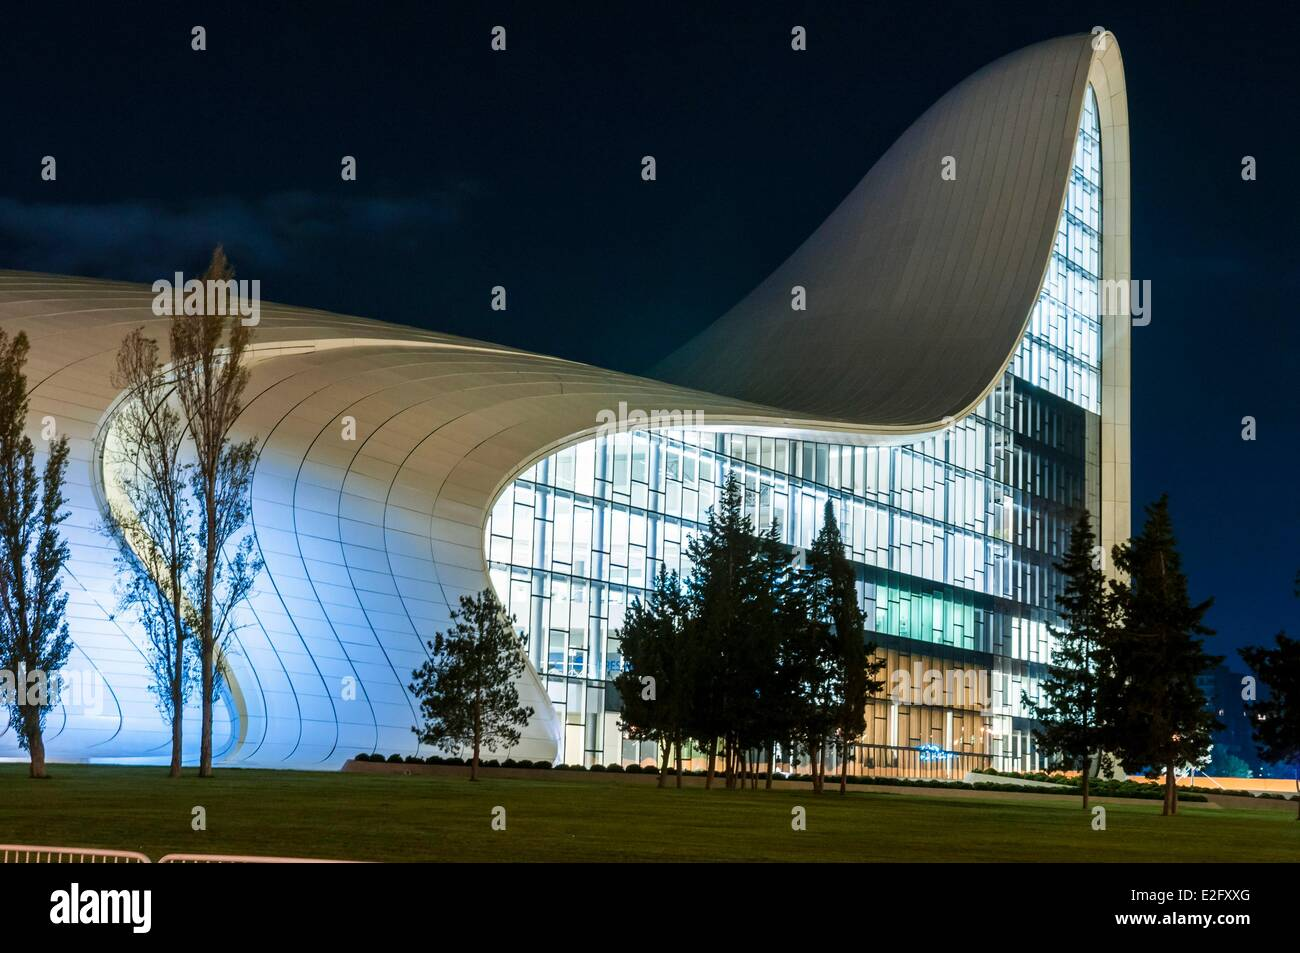 Azerbaijan Baku Heydar Haliyev Conference Centre by architect Zaha Hadid - Stock Image